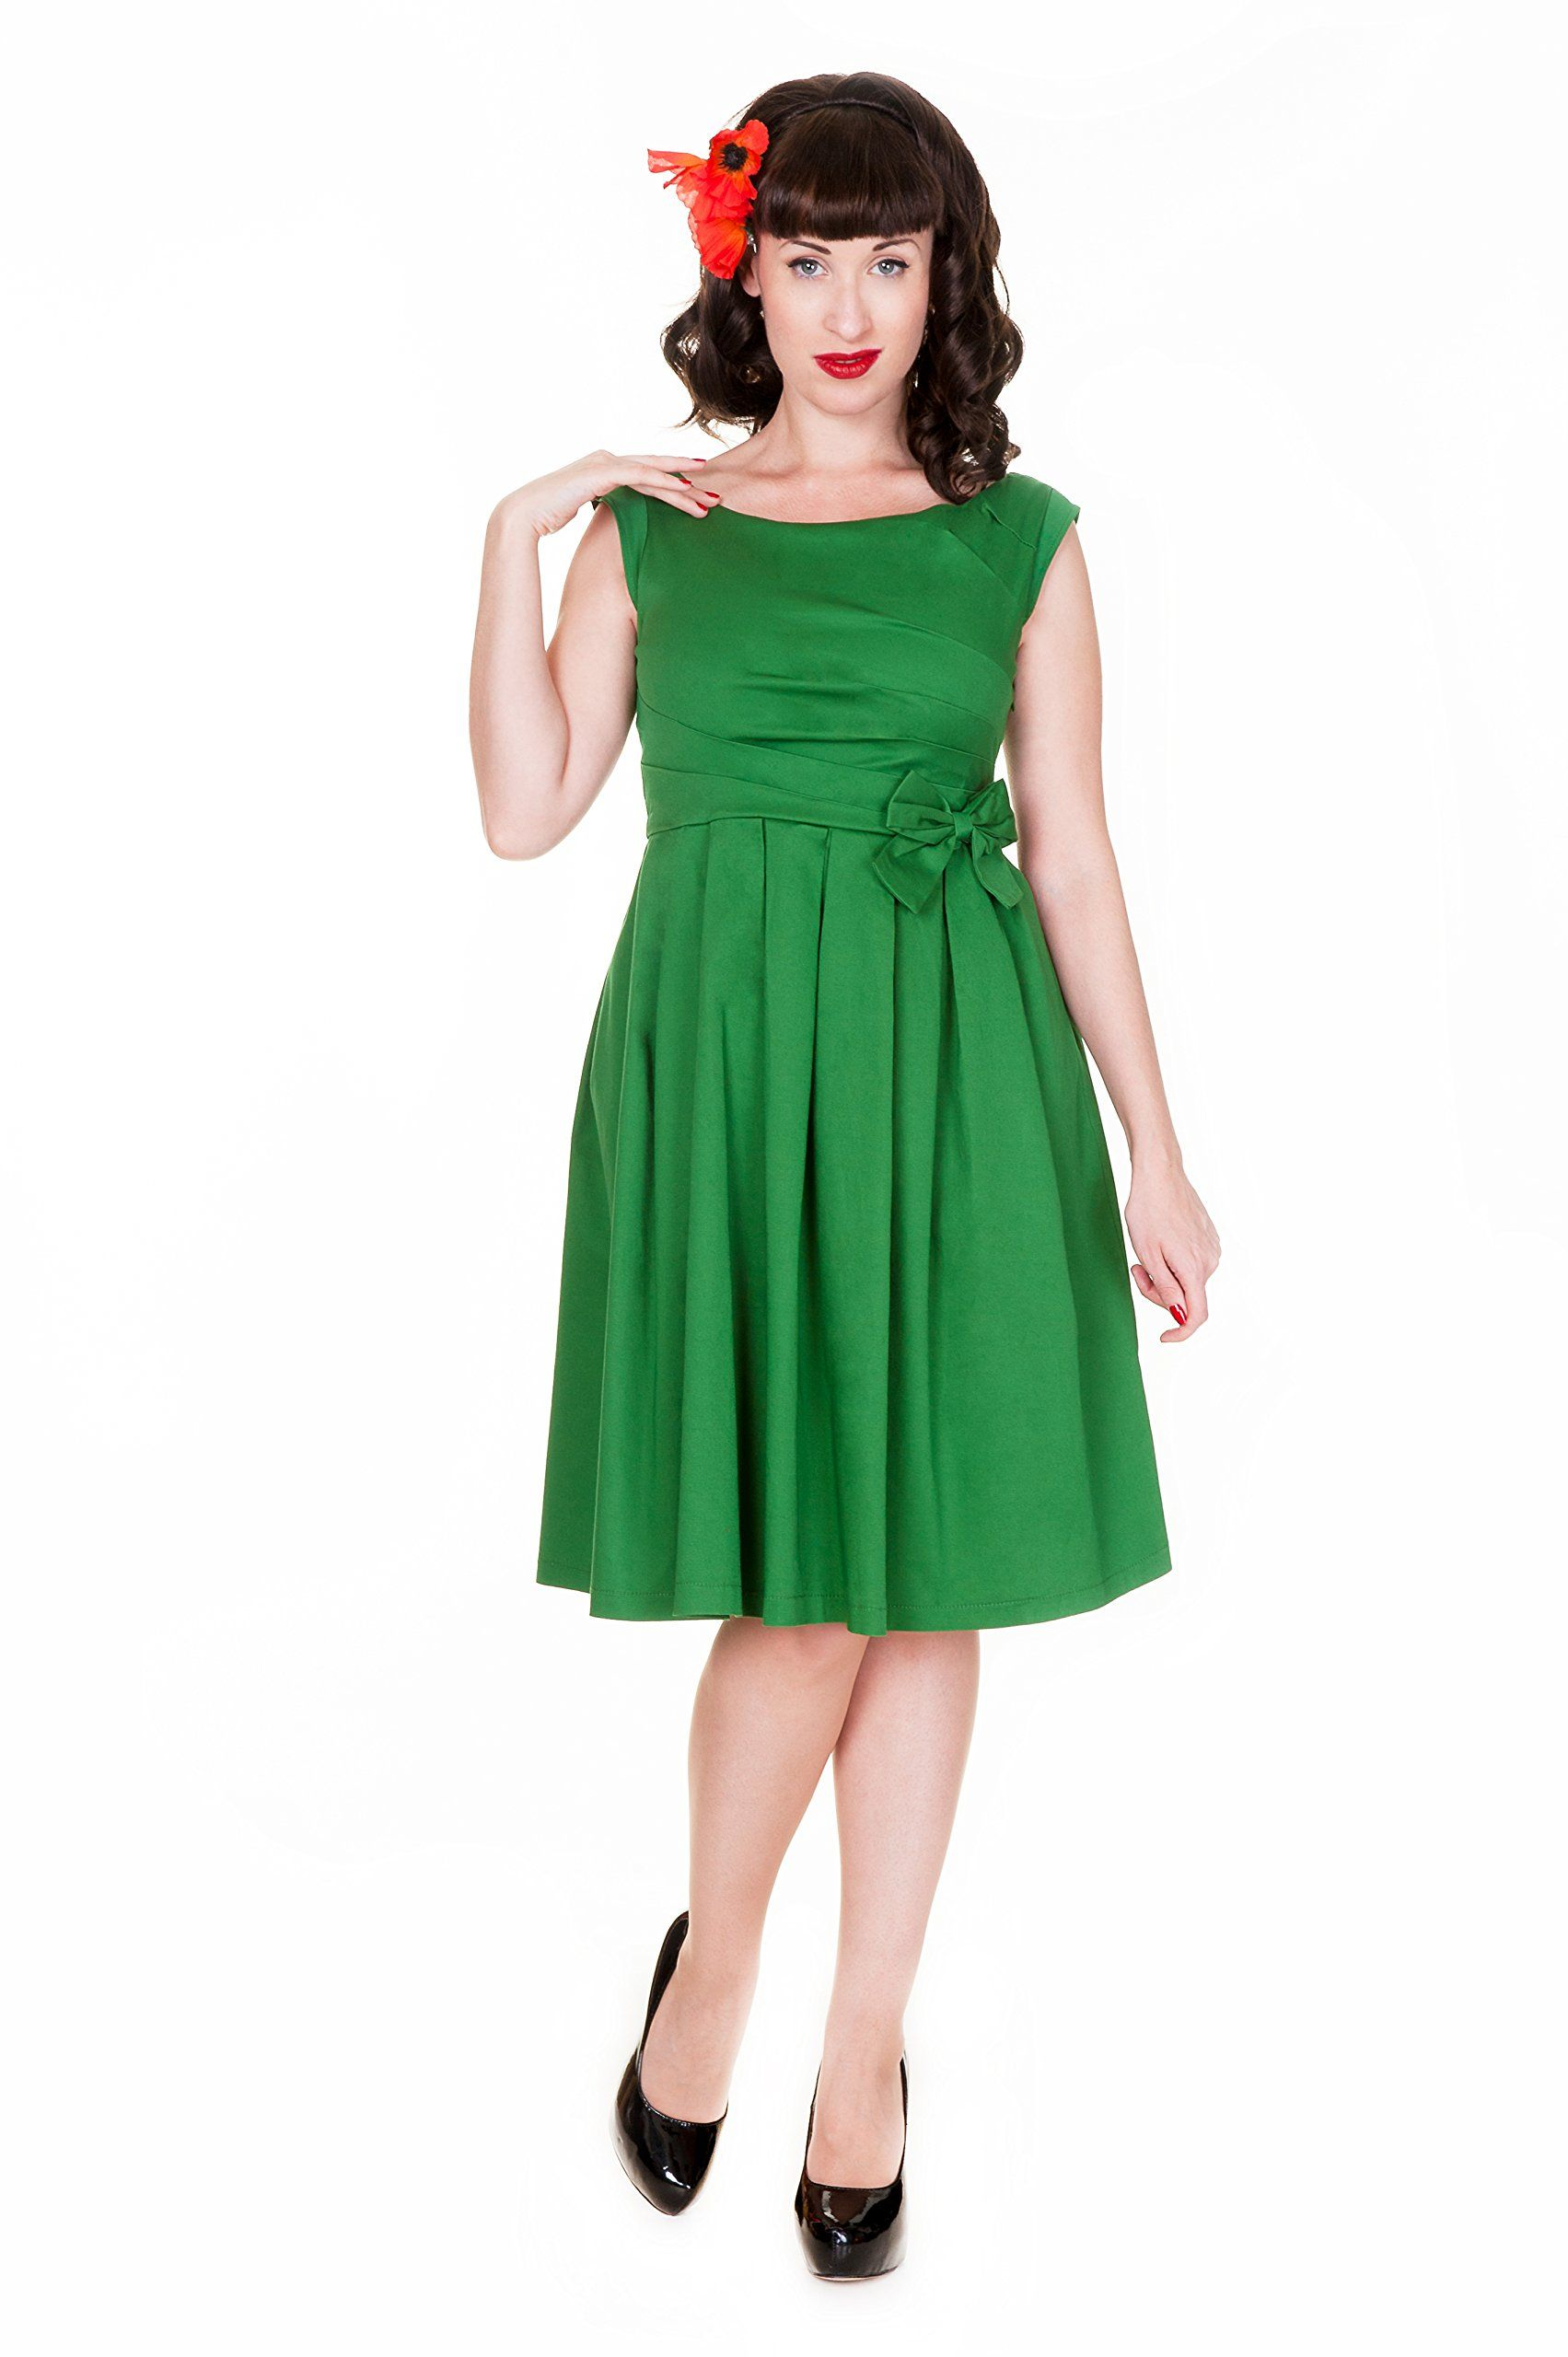 99dac49cca1b Lindy Bop Women s  Lucille  Classy 50 s Vintage Style Pleated Rock N Roll  Party Dress at Amazon Women s Clothing store  Rockabilly Dress